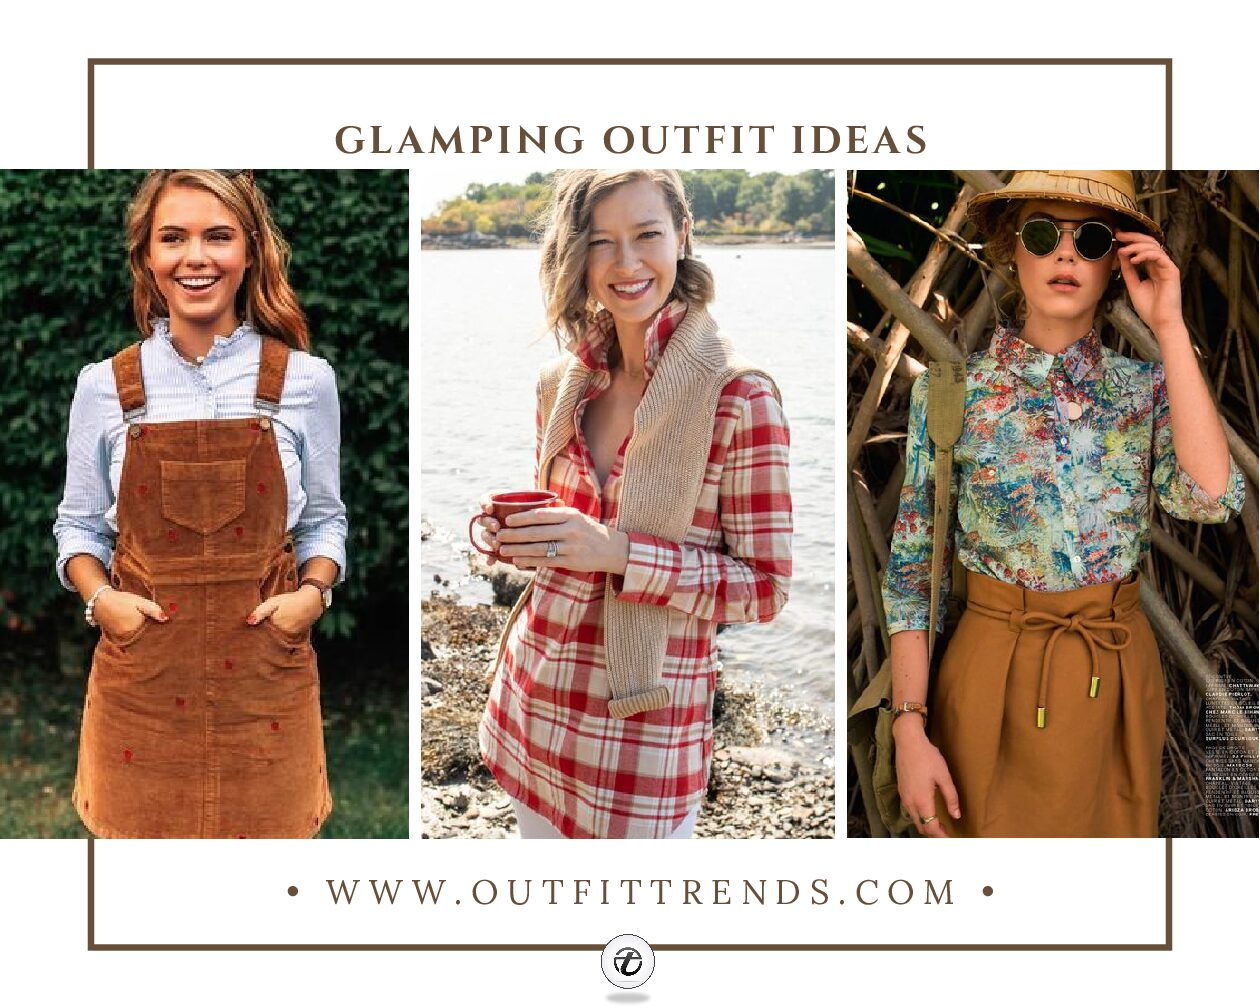 Girls Glamping Outfits: 20 Ideas On What To Wear To Glamping